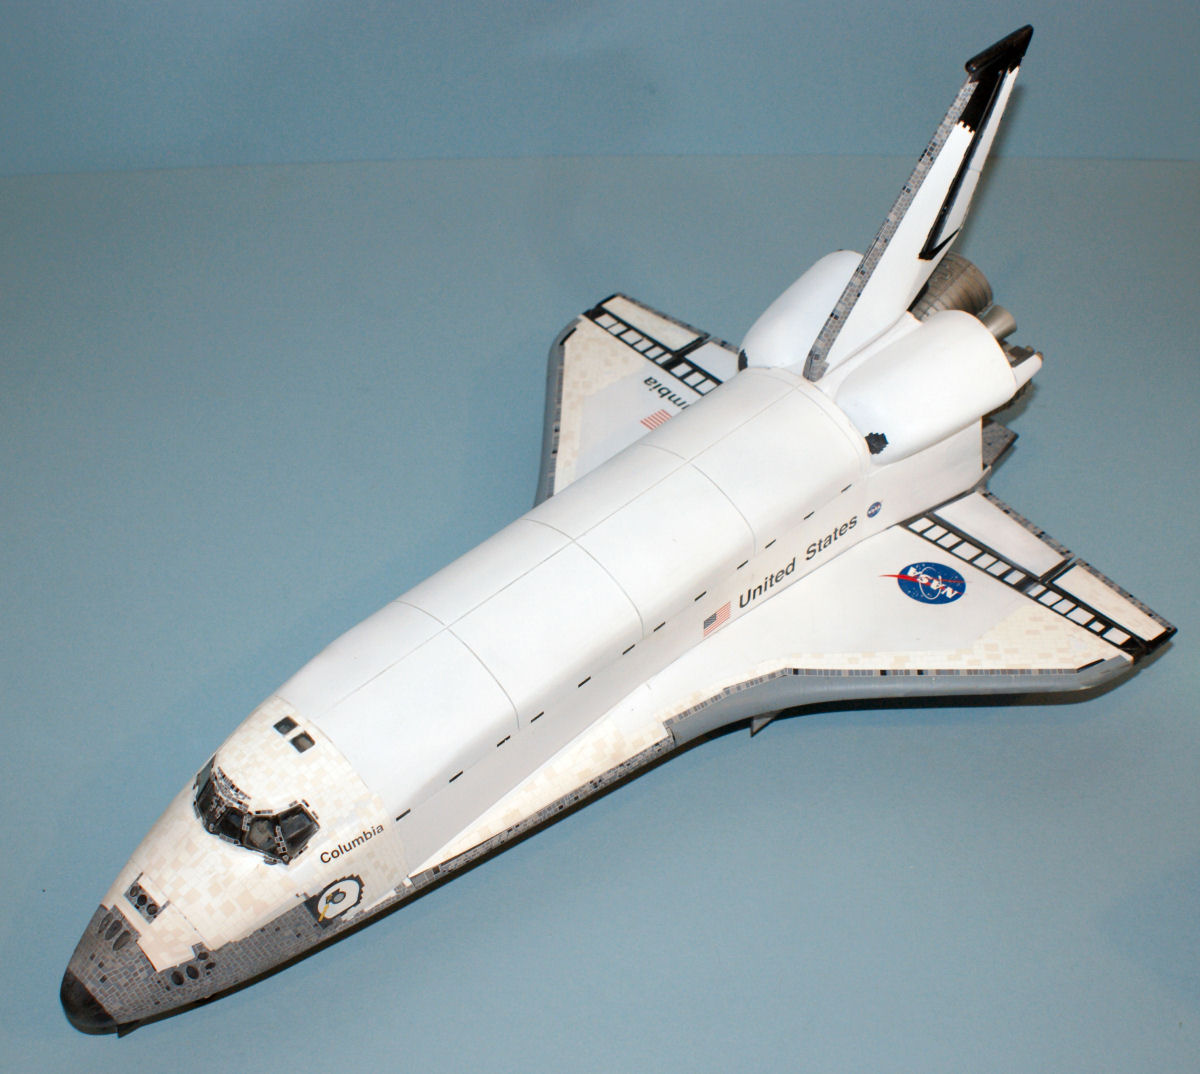 space shuttle columbia model - photo #14